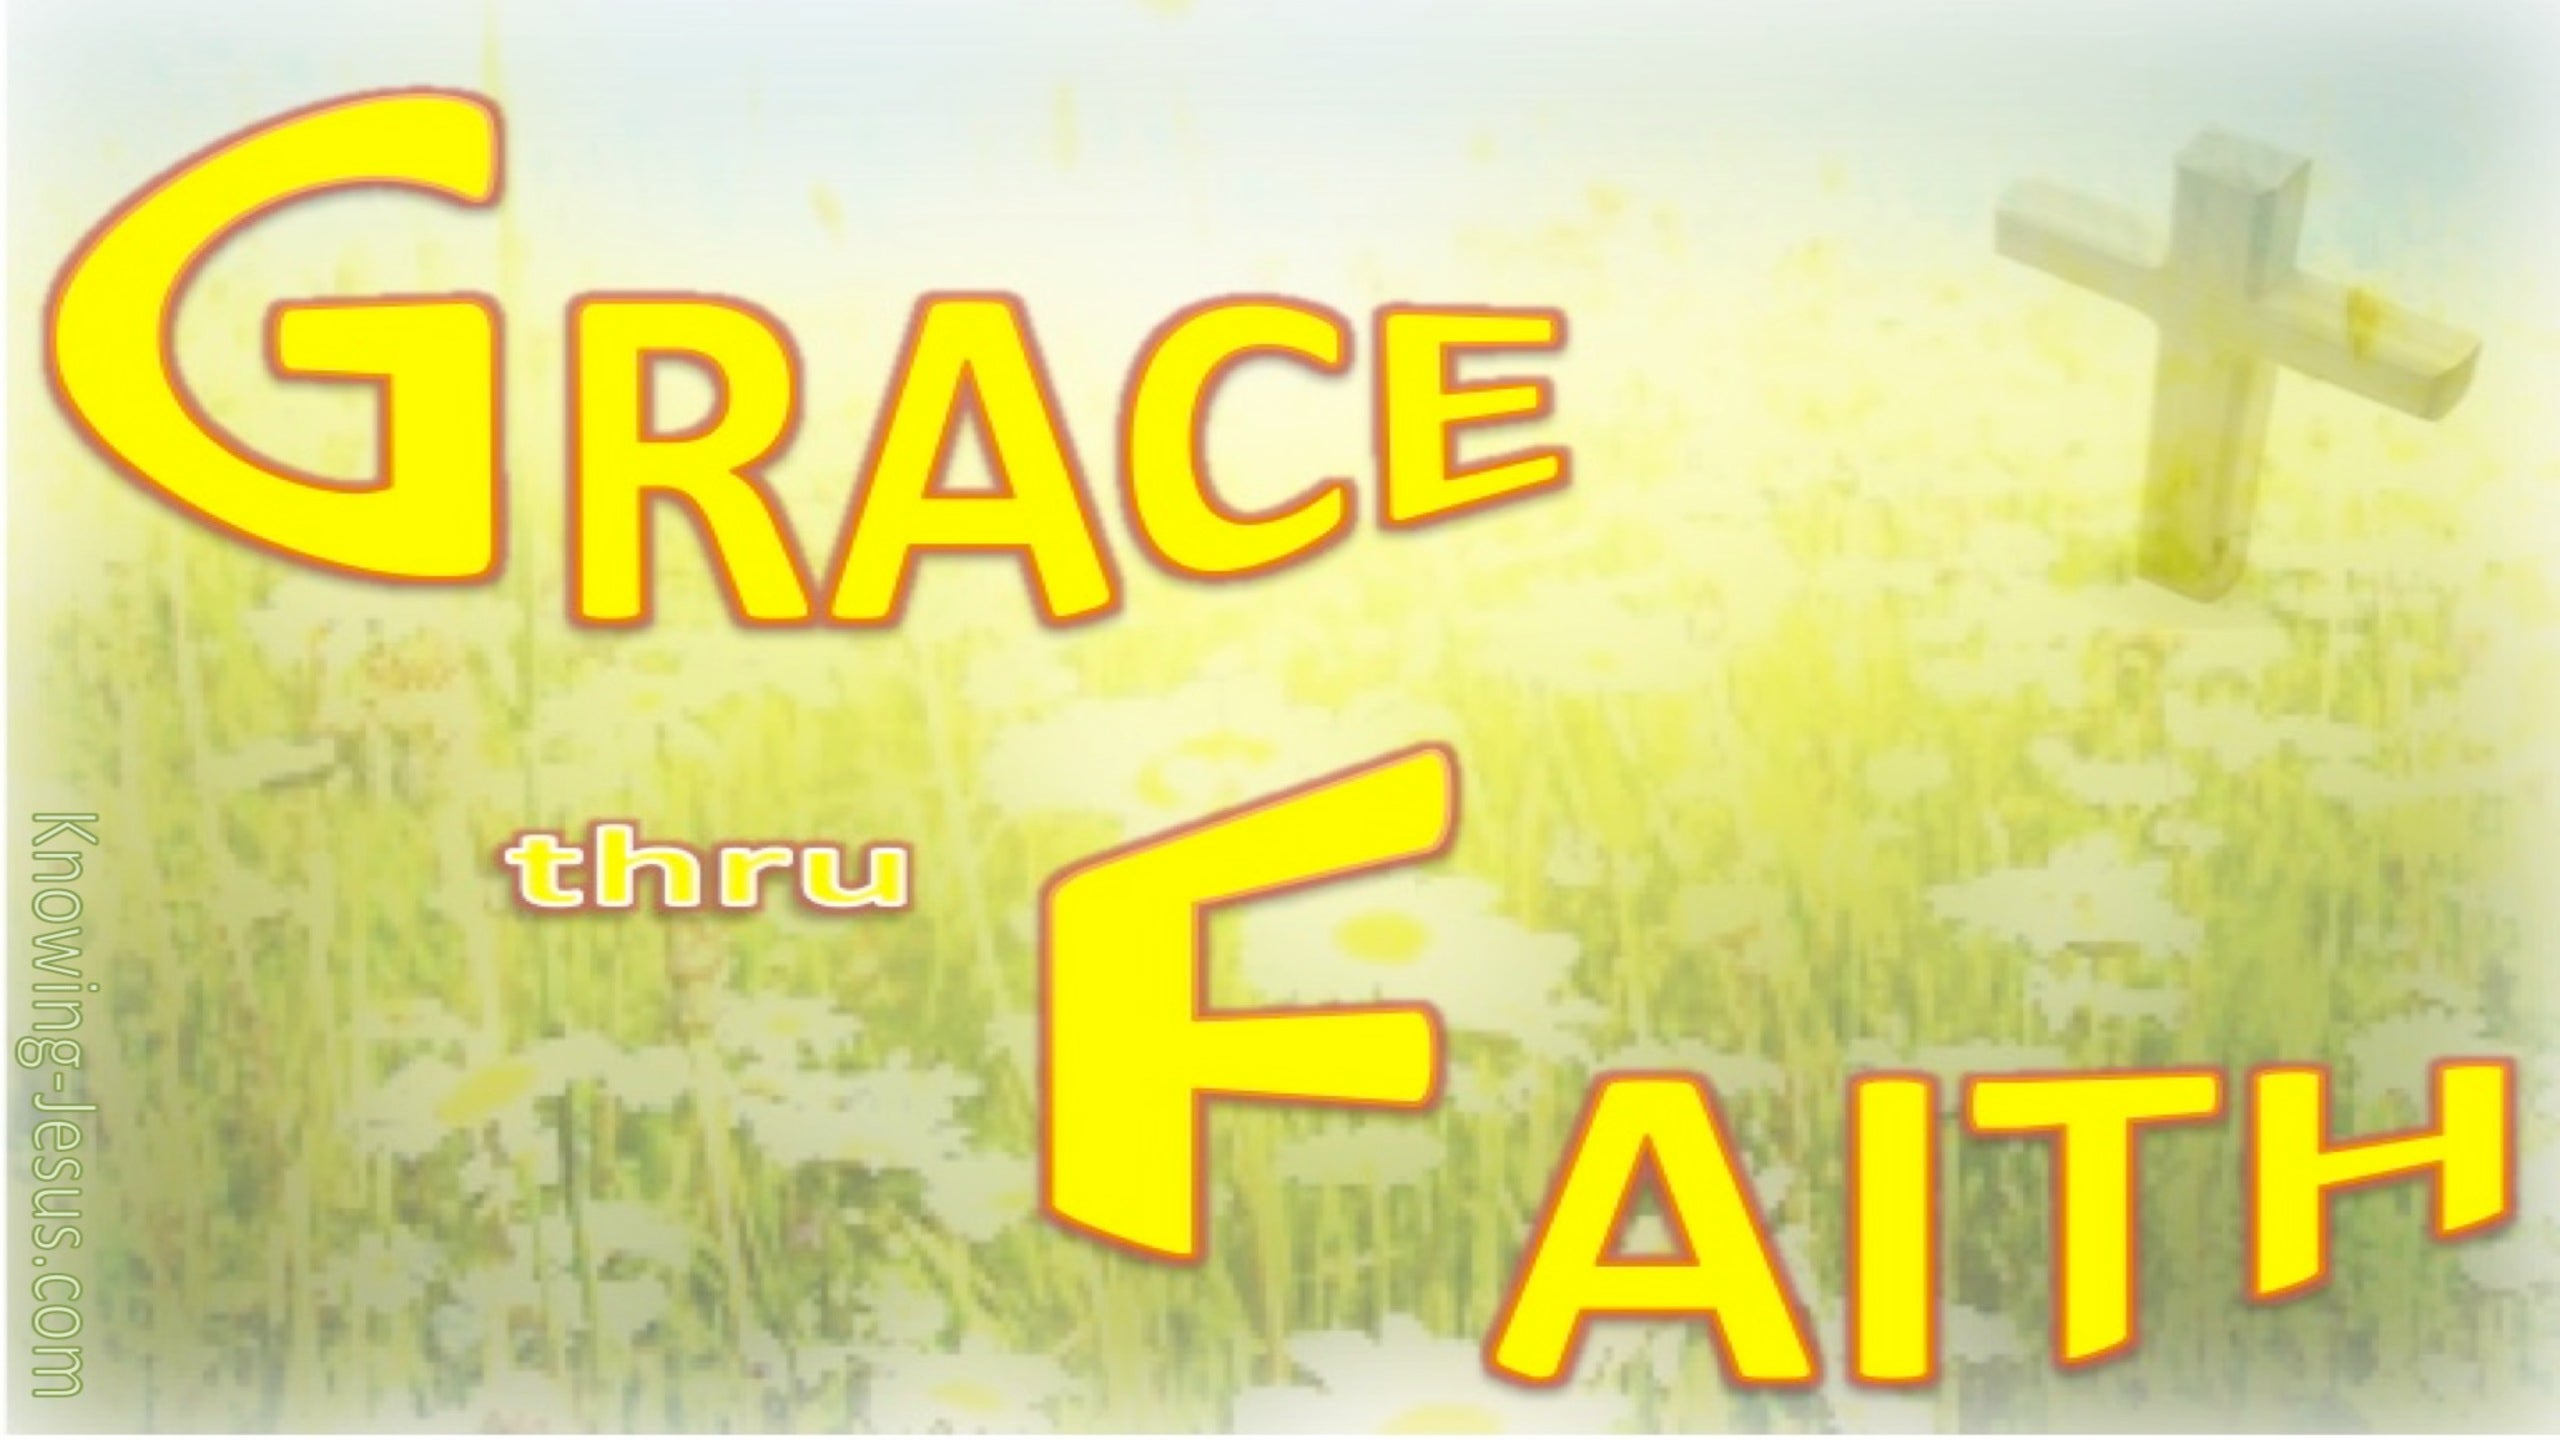 GRACE Thru Faith (yellow)